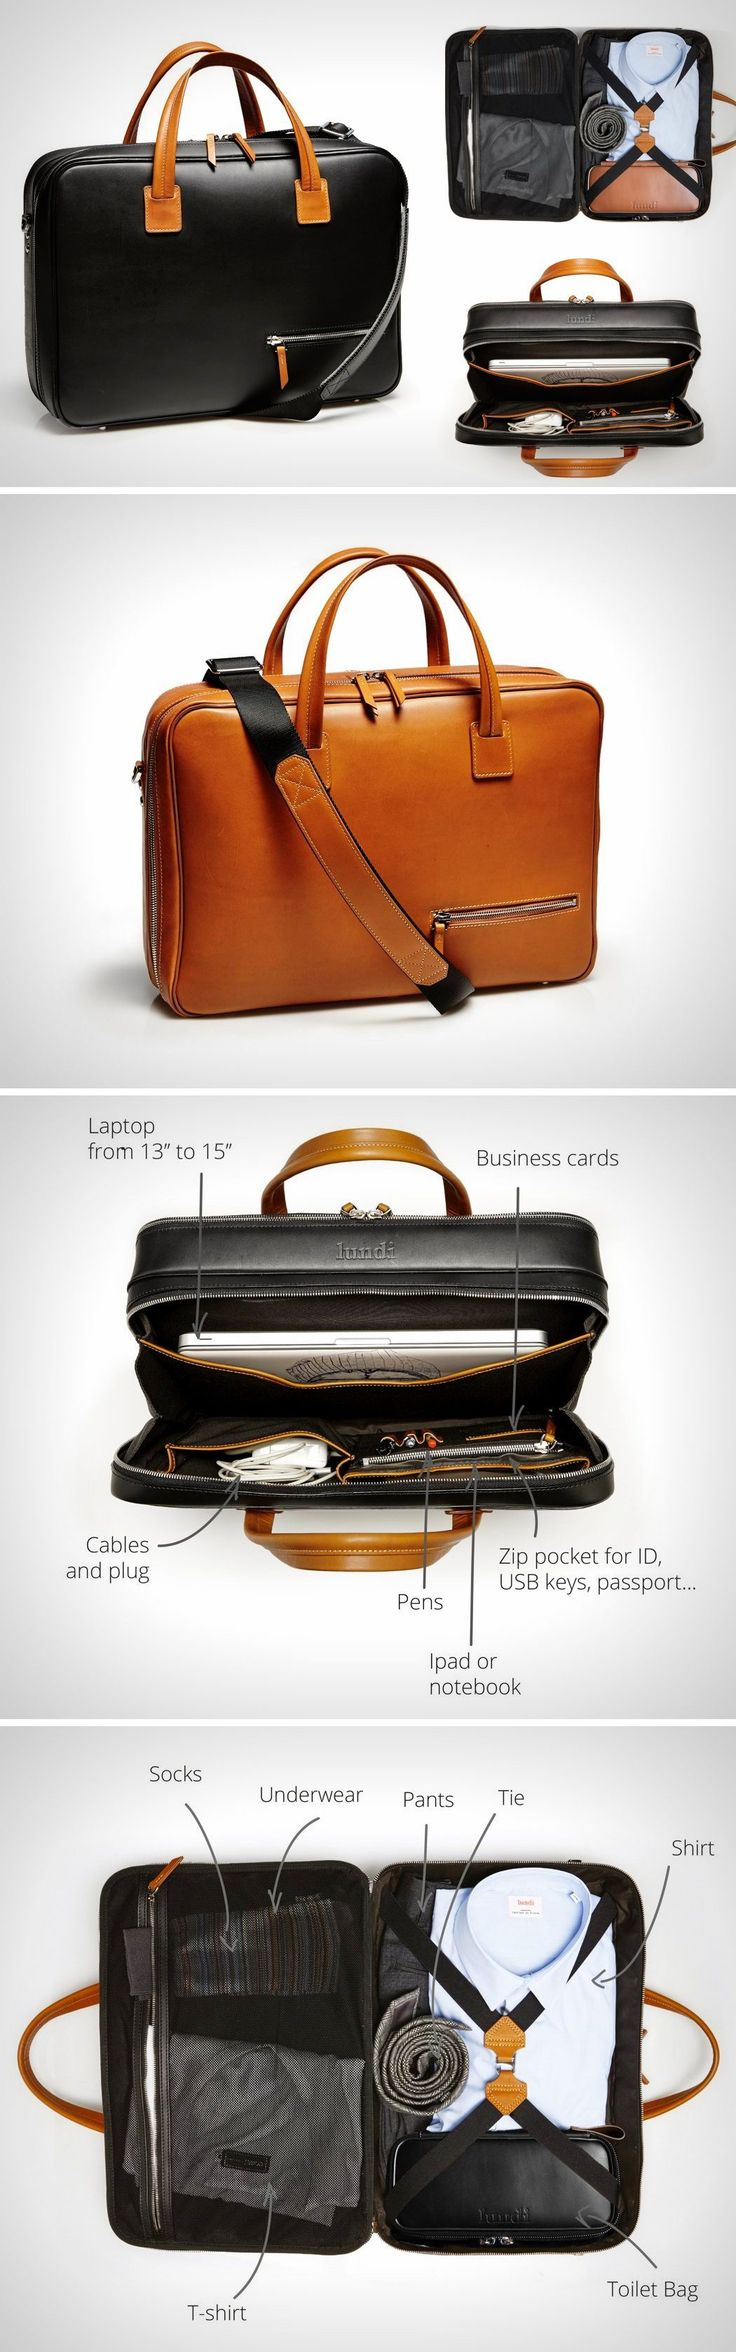 While most bags attempt at multitasking by being work-bags, travel-bags, weekend-bags, gym-bags, etc., dappling with modularity and adaptability, the Lundi travel bag isn't a jack of all trades, but rather, a master of one domain. Creating a new category of bags designed with not activities in mind, but rather hours spent pursuing them, the Lundi is the world's first 36-hour Travel Bag, built specifically for being the best partner for your short business trip.